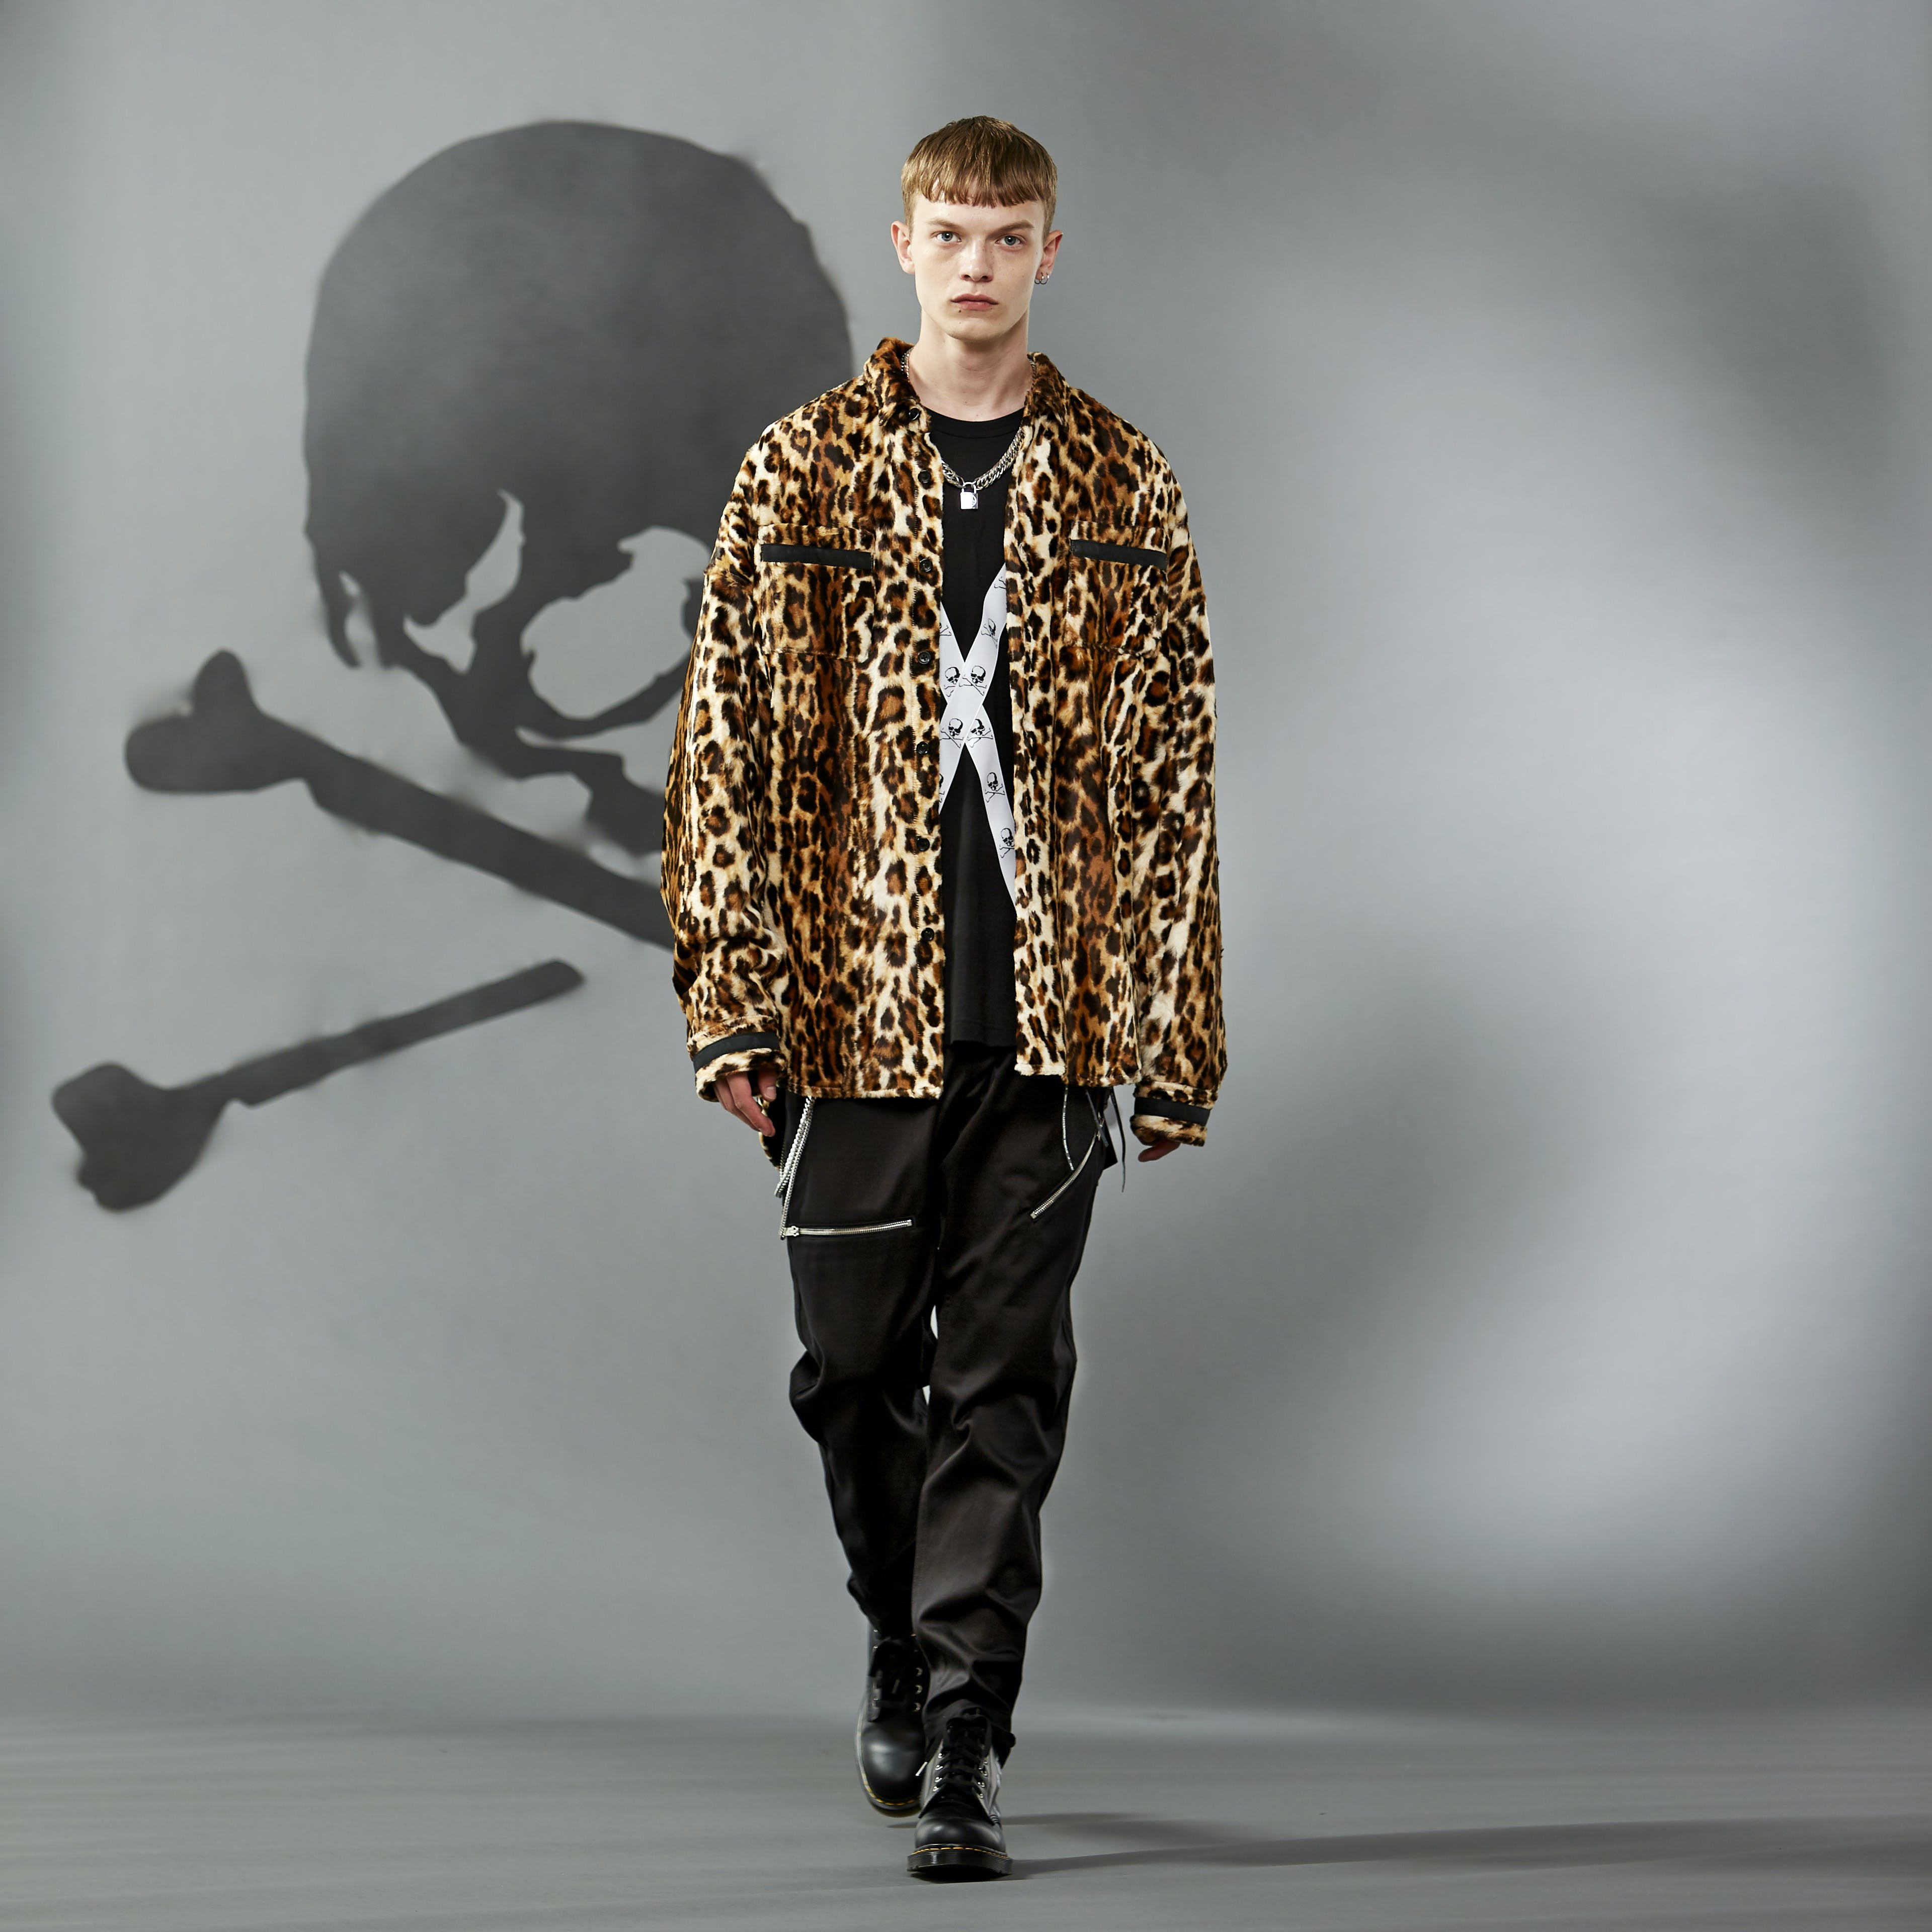 MASTERMIND WORLD FW19 look book presentation with leopard print shirt